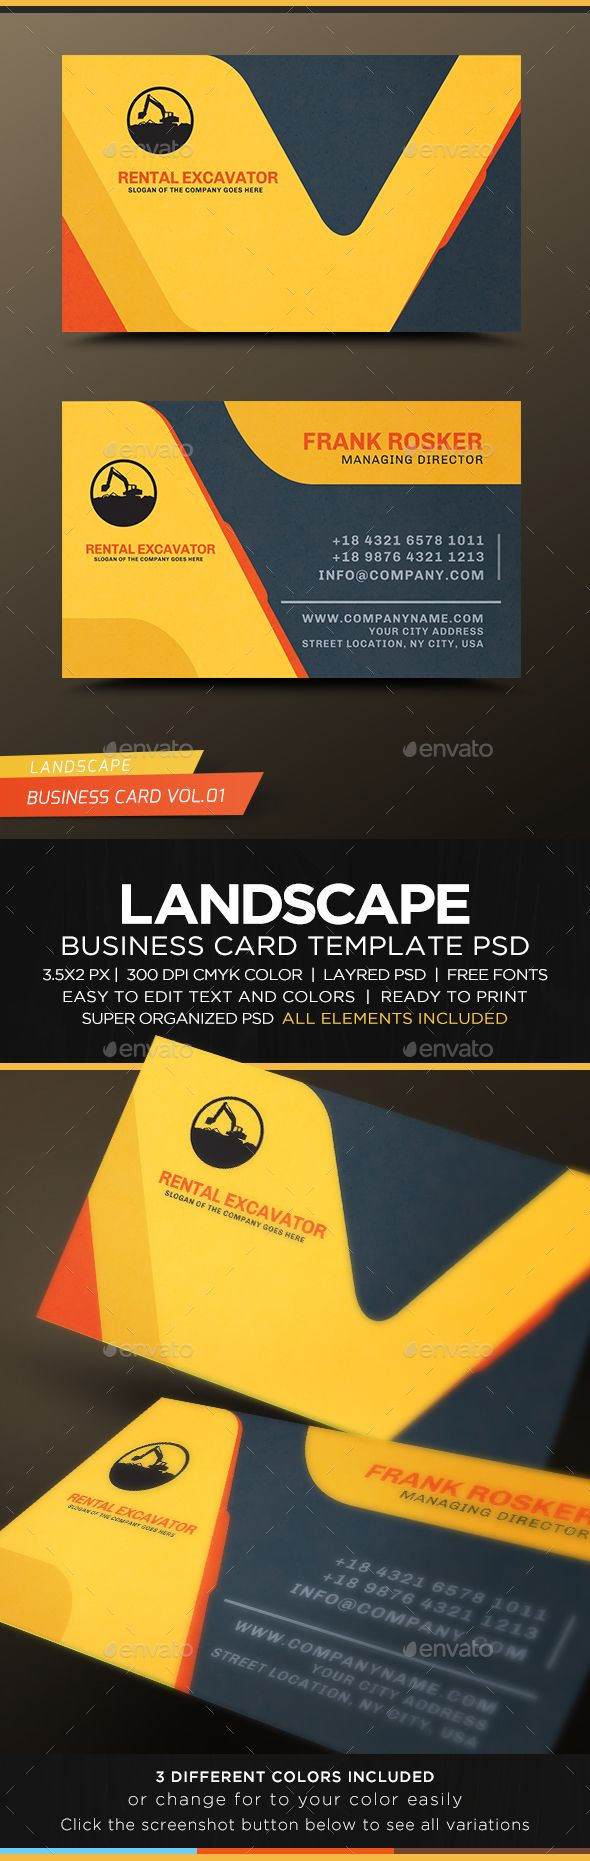 30 best Business Cards Los Angeles images on Pinterest | Card ...